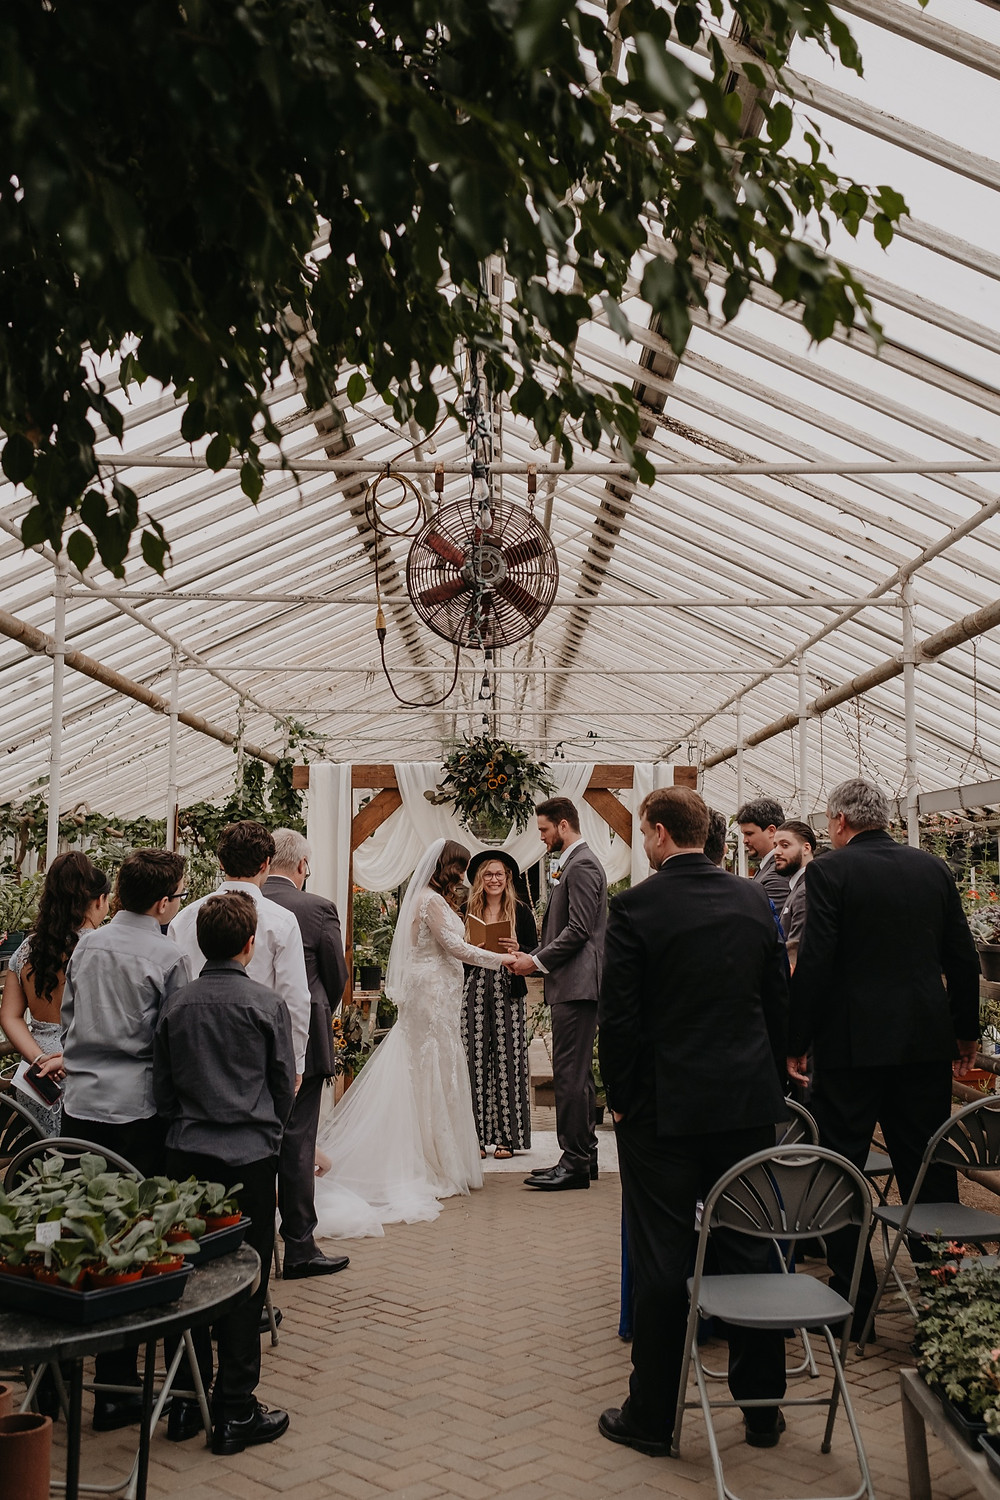 Graye's Greenhouse wedding ceremony in Metro Detroit. Photographed by Nicole Leanne Photography.